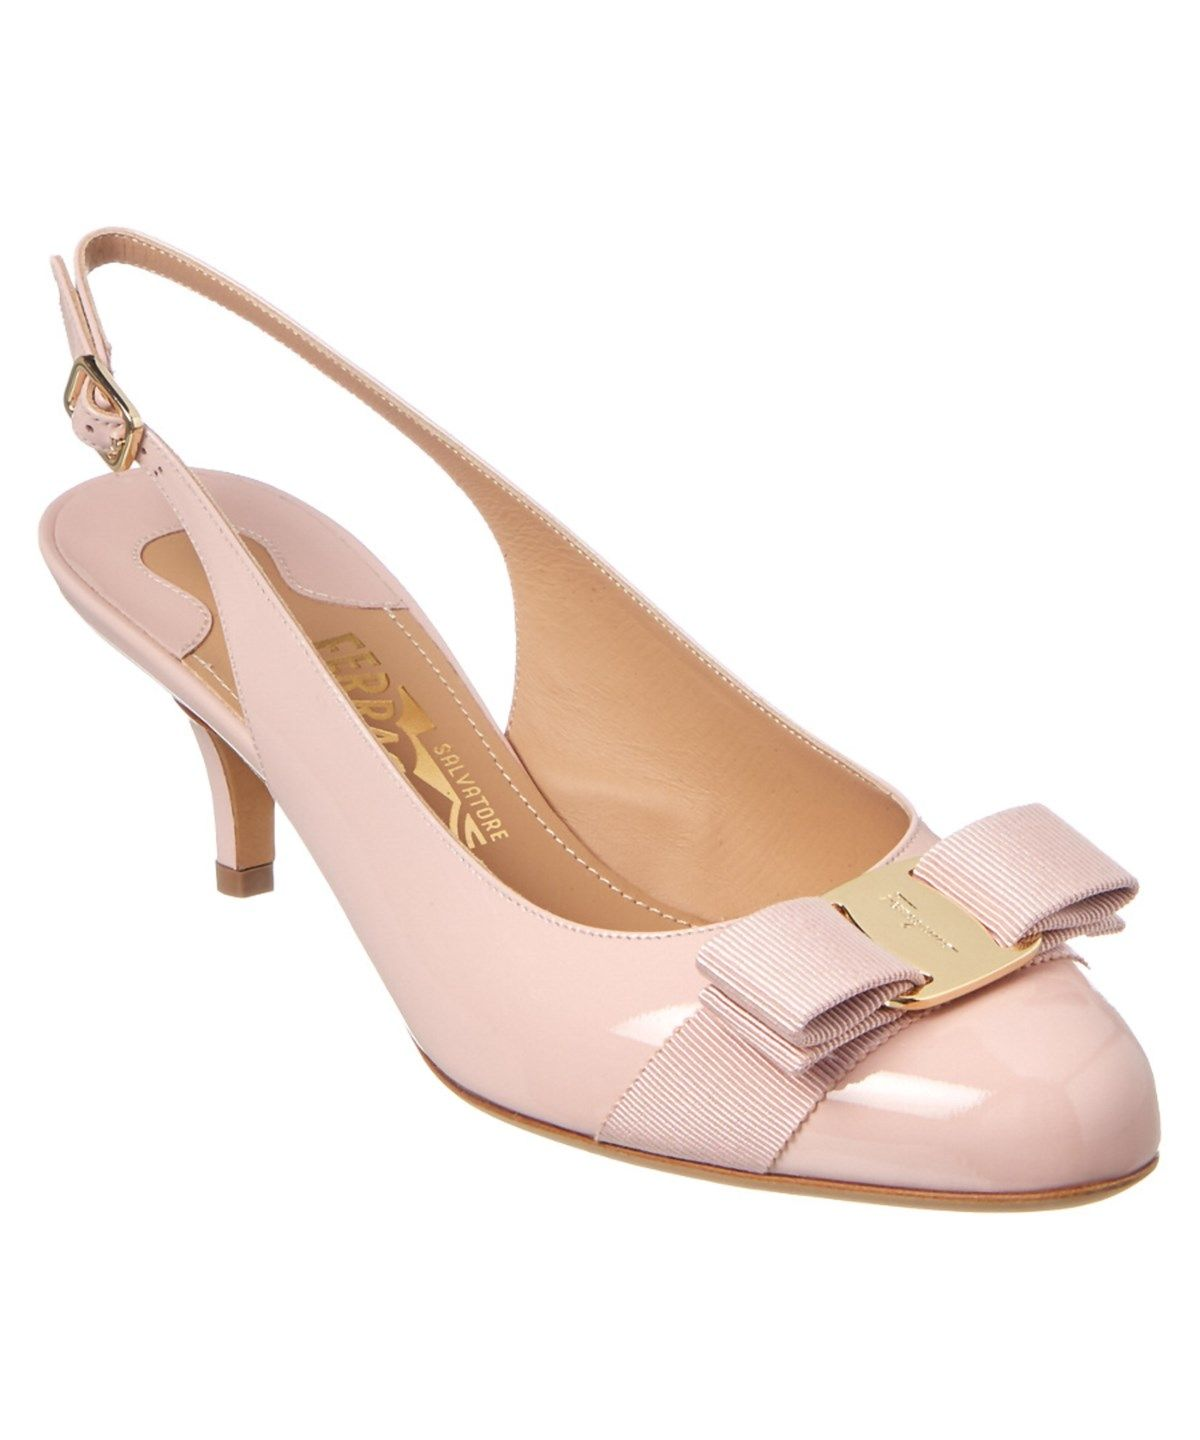 SALVATORE FERRAGAMO SALVATORE FERRAGAMO PATENT SLINGBACK KITTEN HEEL PUMP'. #salvatoreferragamo #shoes #pumps & high heels